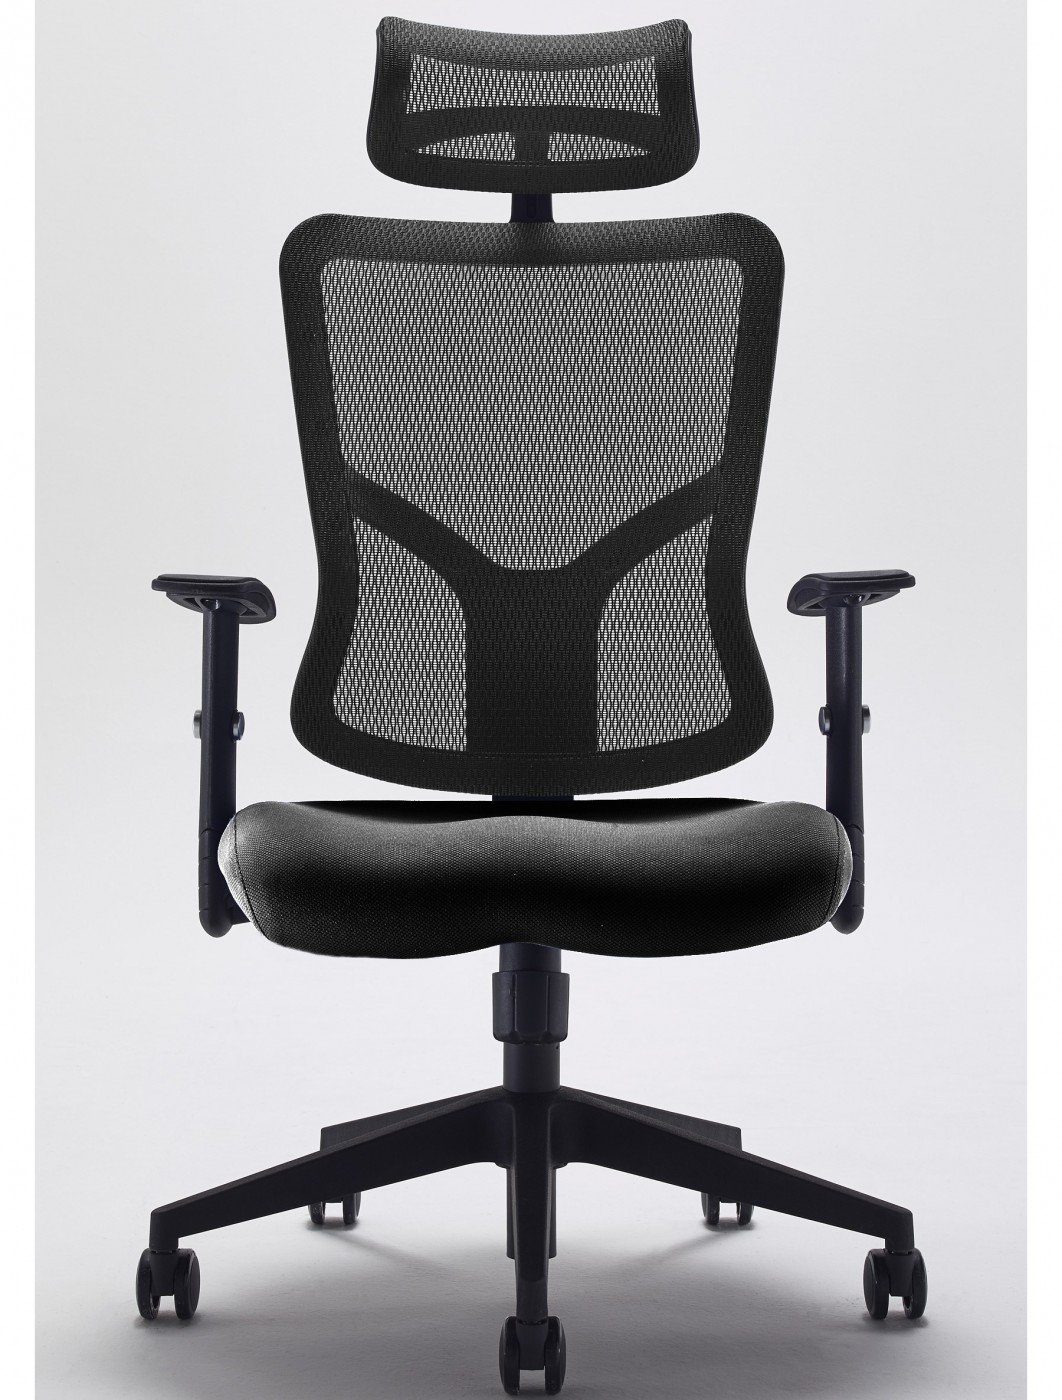 Office Chairs Kempes Mesh Chair ETC043 | 121 Office Furniture for Office Chair Front View  300lyp